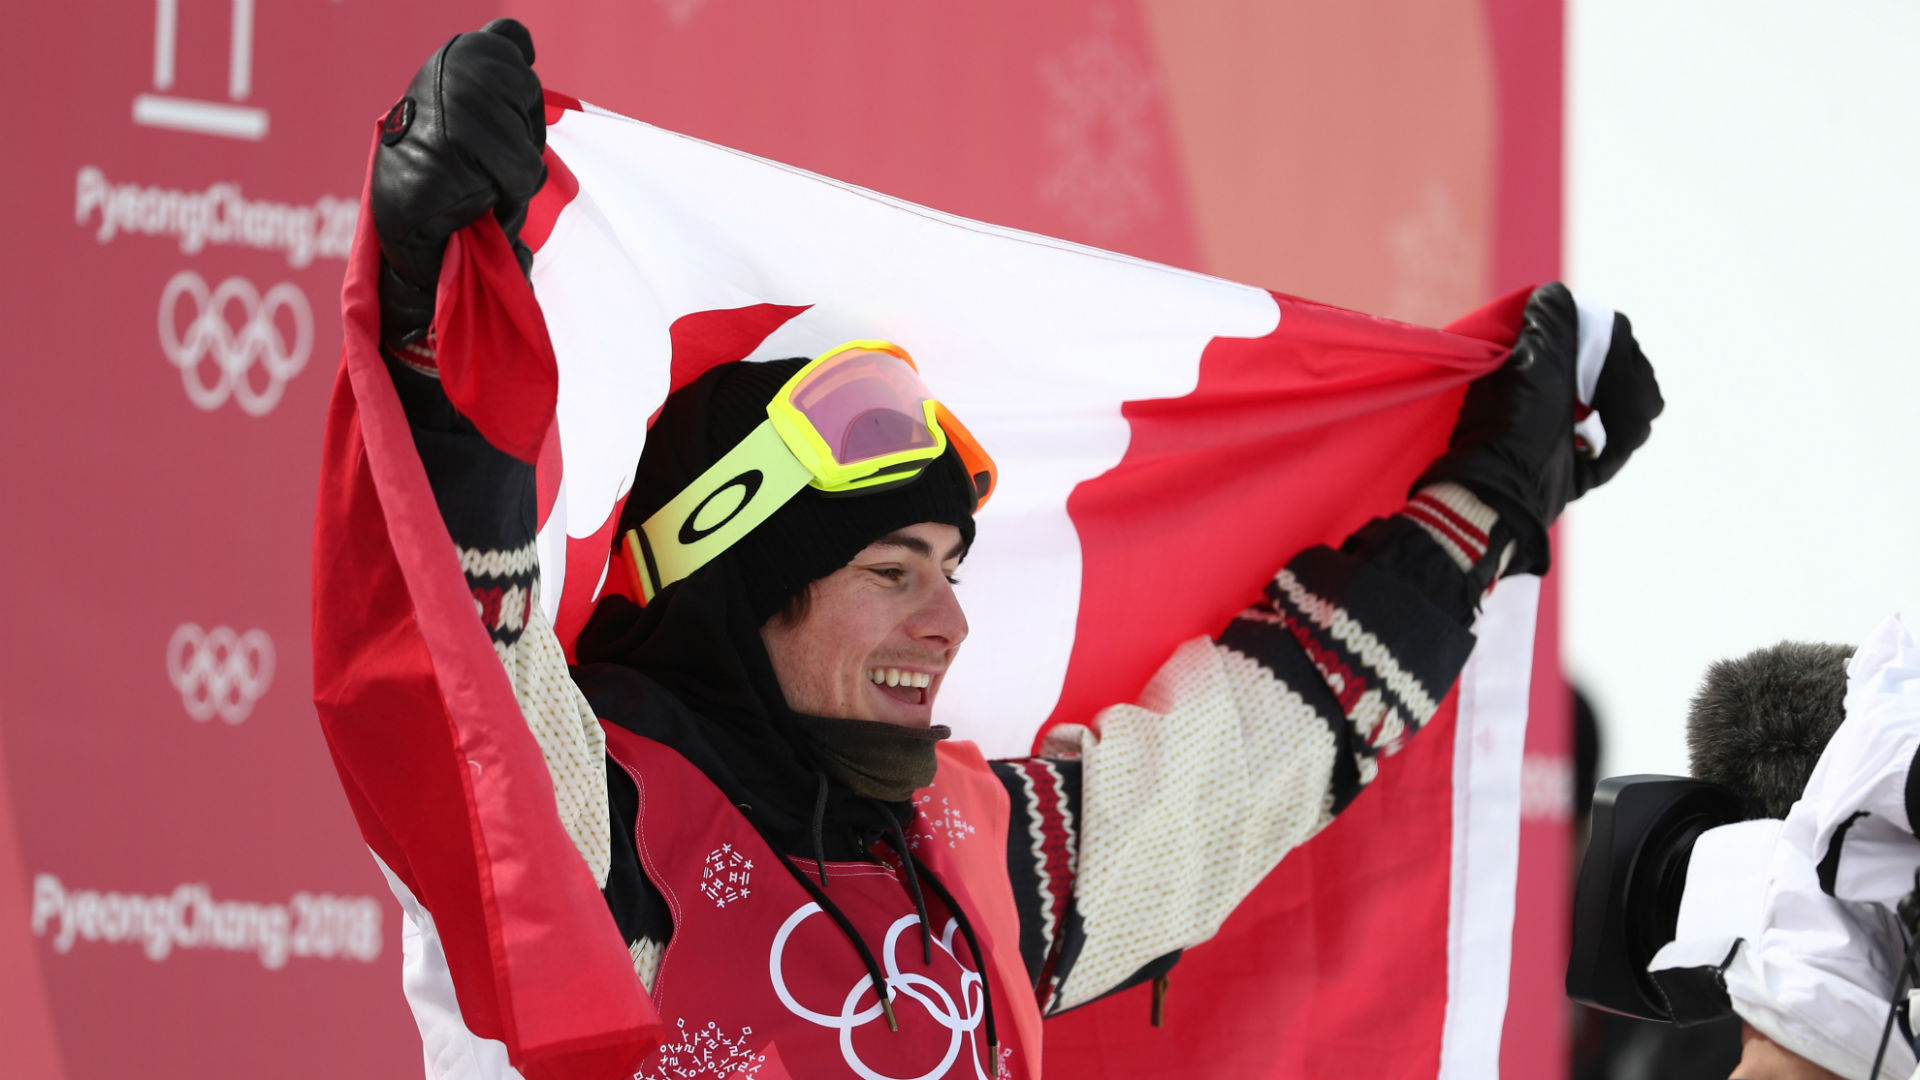 Canada's Toutant wins Olympic gold in snowboard big air